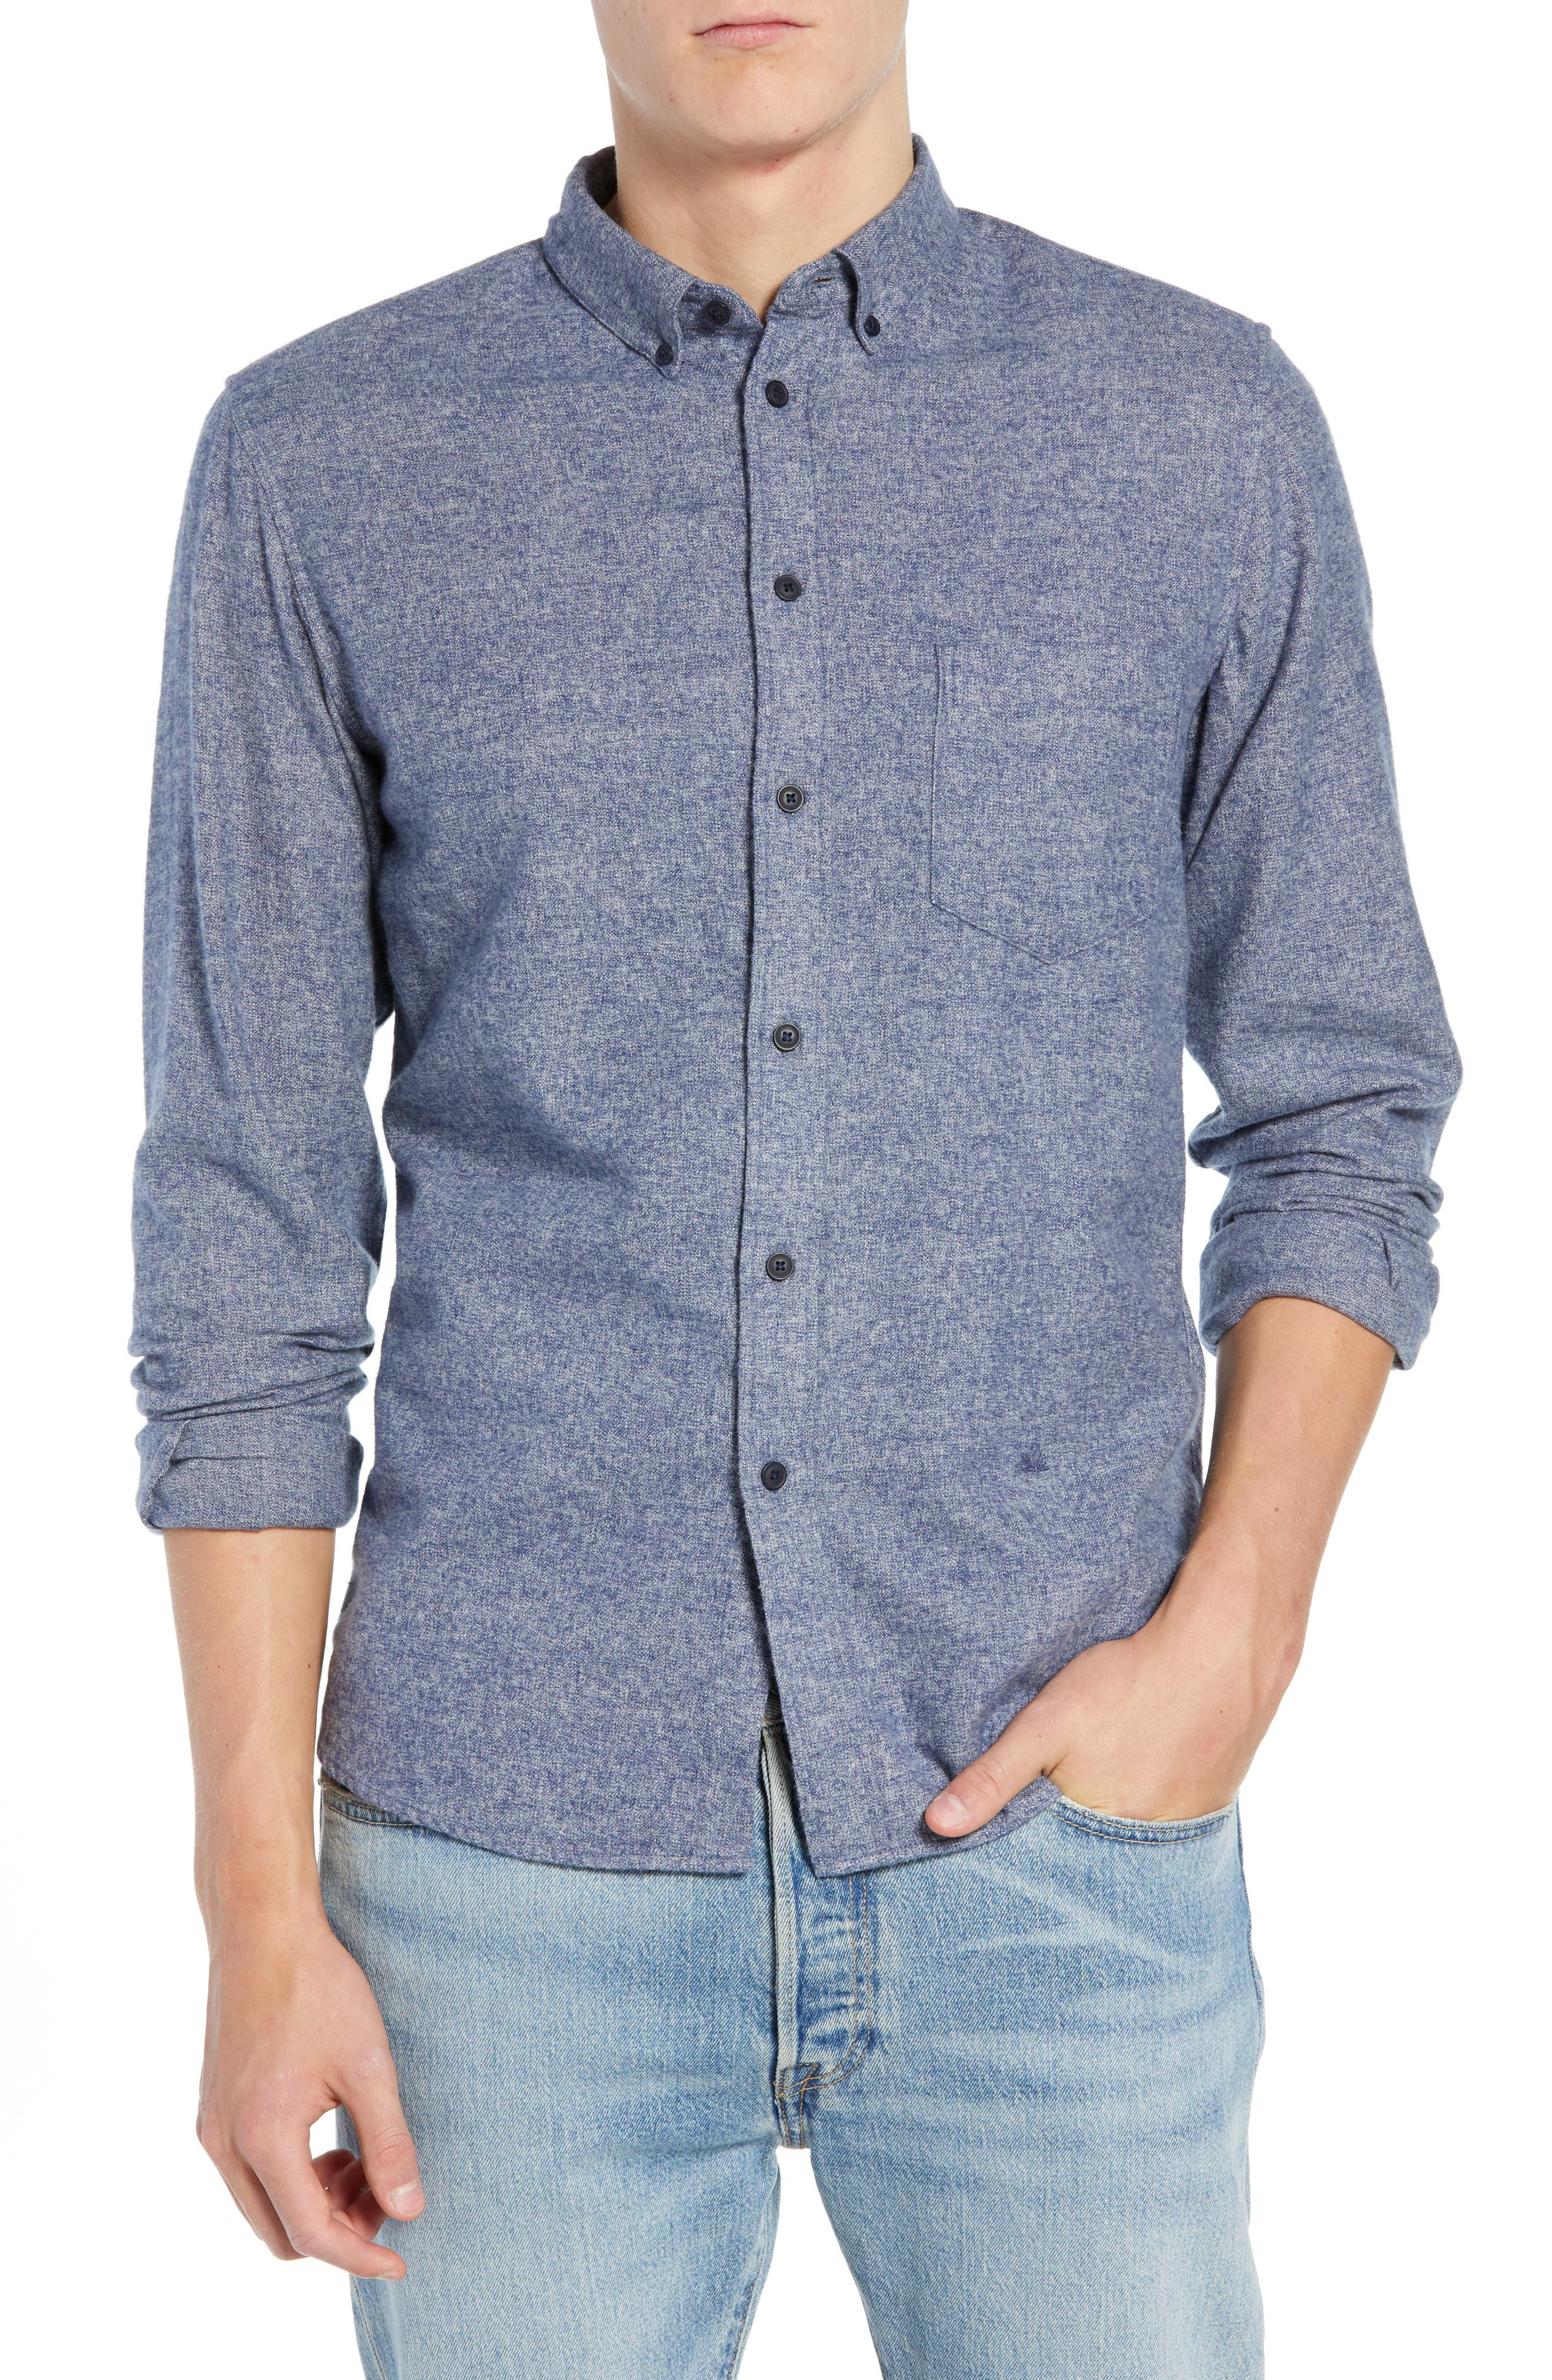 Levi's<sup>®</sup> Made & Crafted Standard Regular Fit Twill Shirt,                             Main thumbnail 1, color,                             400